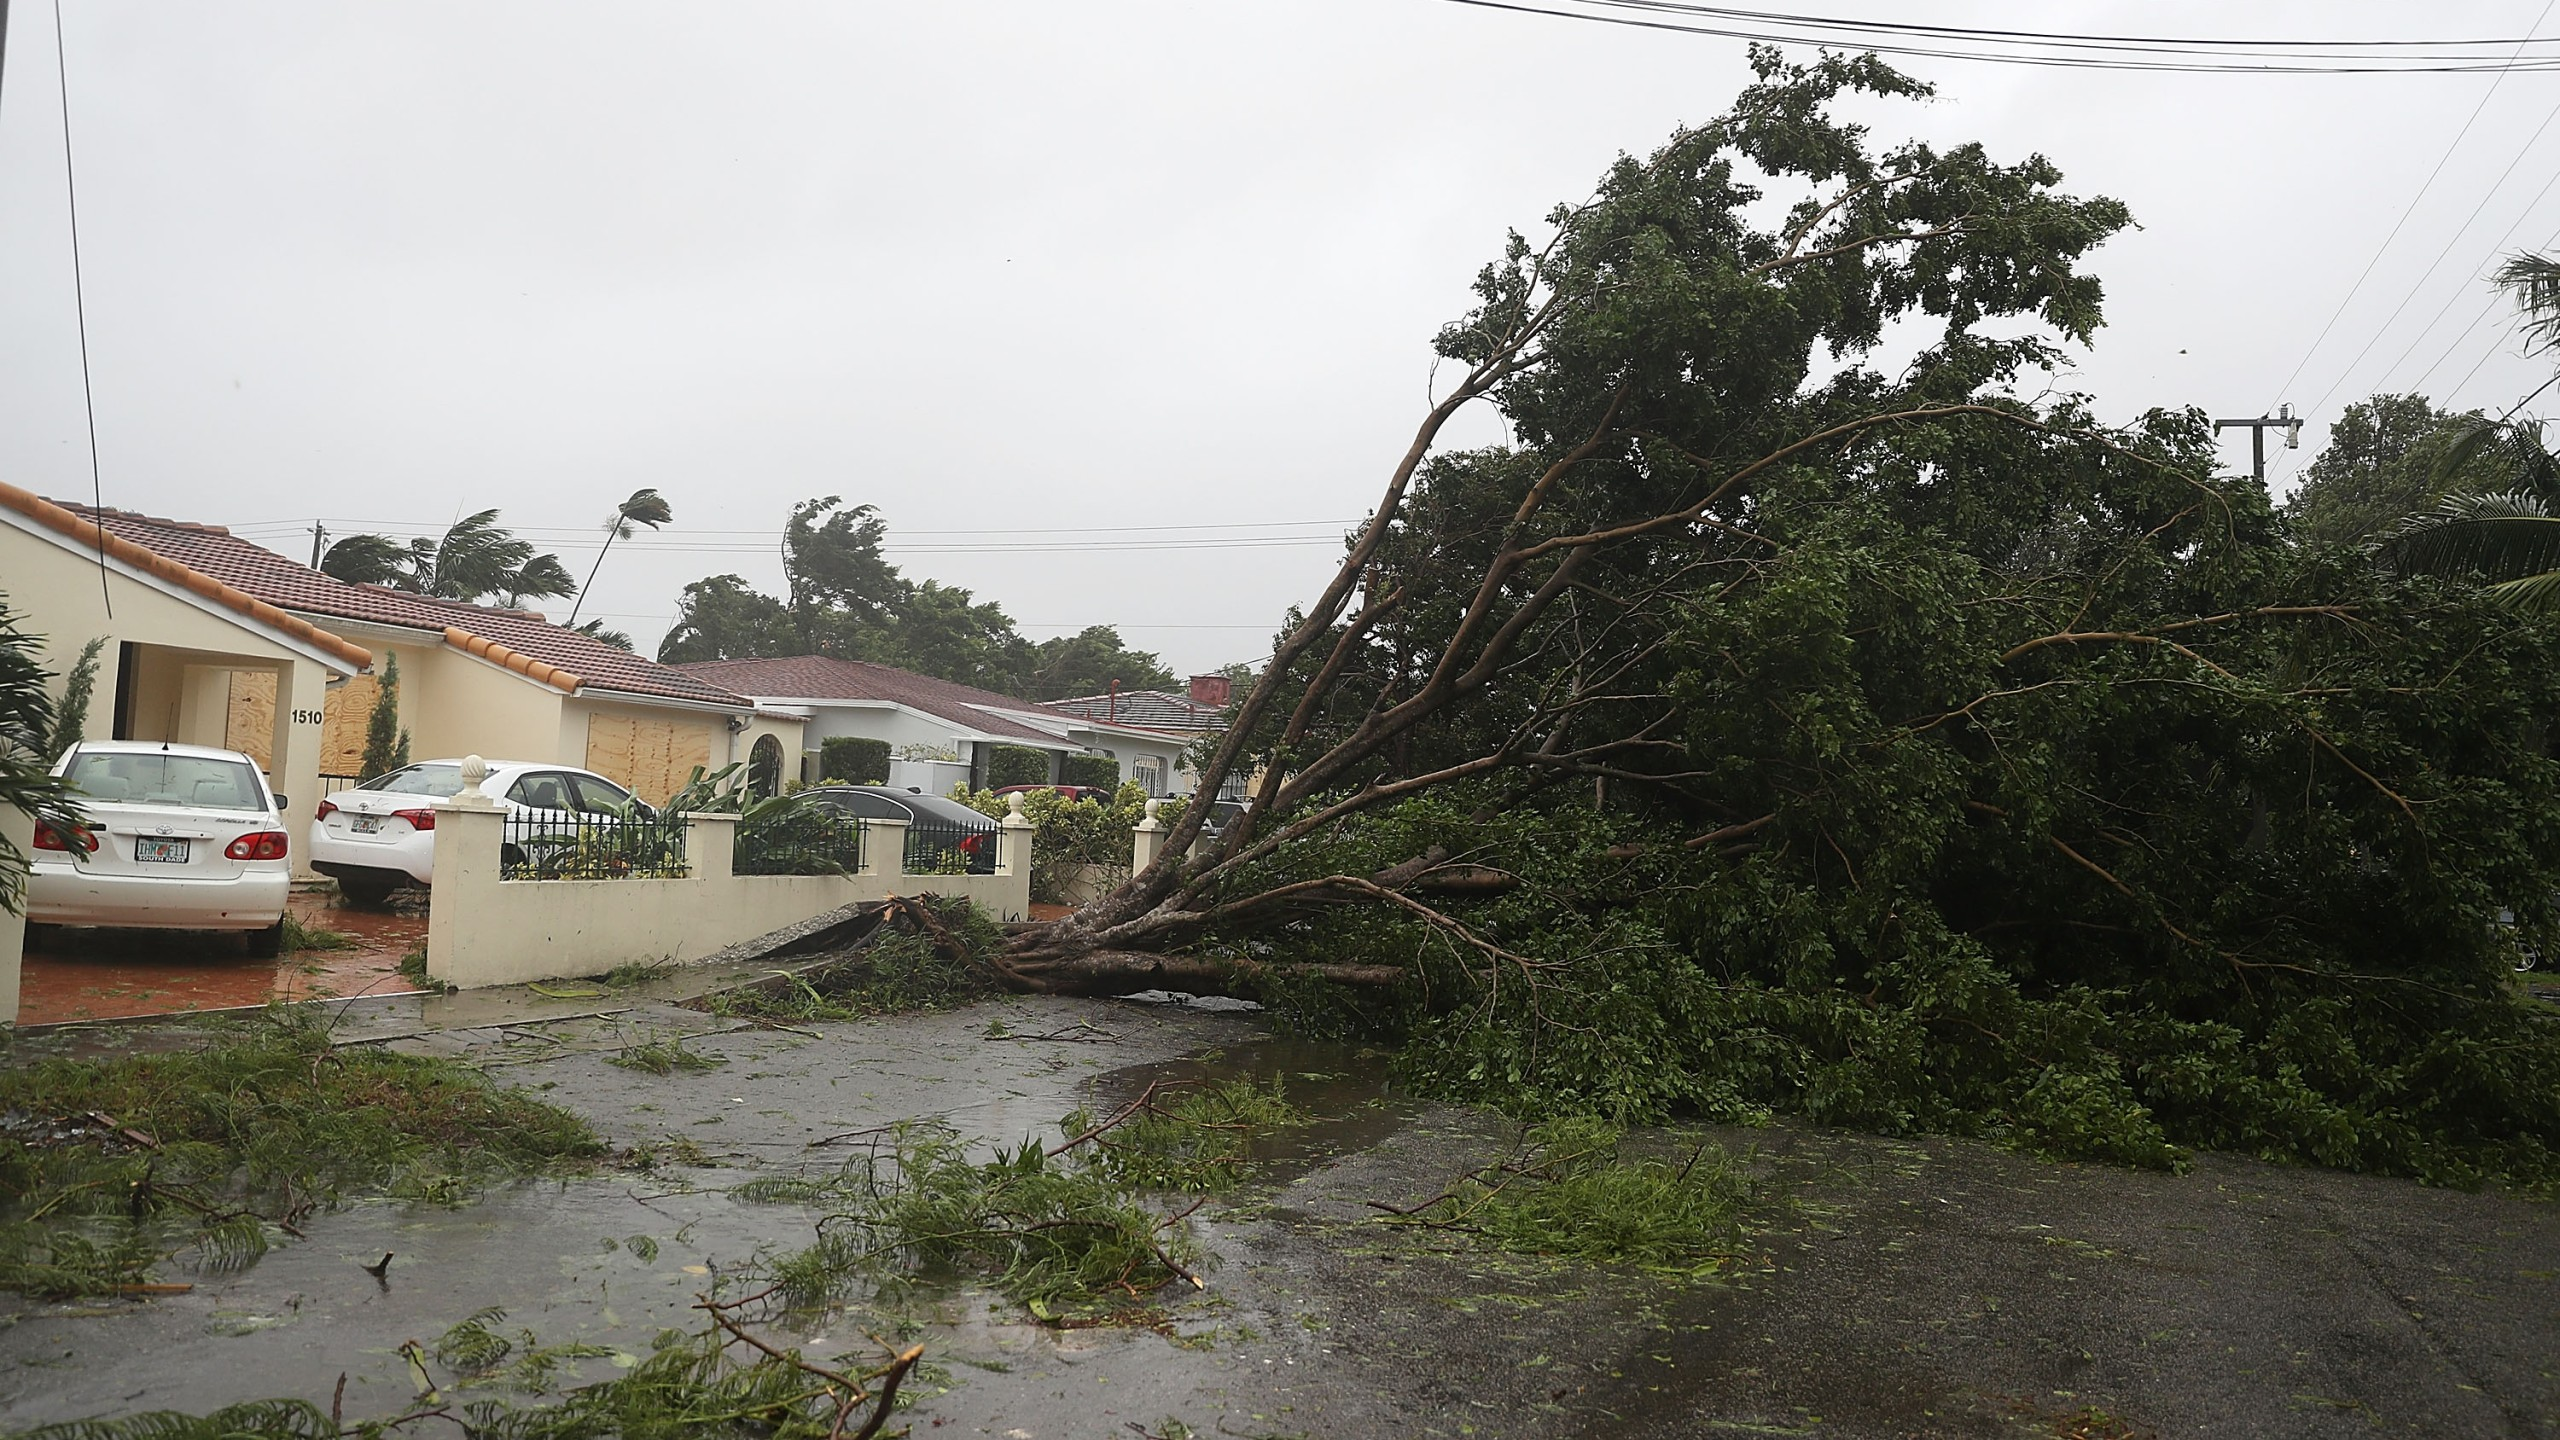 Trees and branches are seen knocked down by high winds of Hurricane Irma on Sept. 10, 2017, in Miami, Florida. (Credit: Joe Raedle/Getty Images)